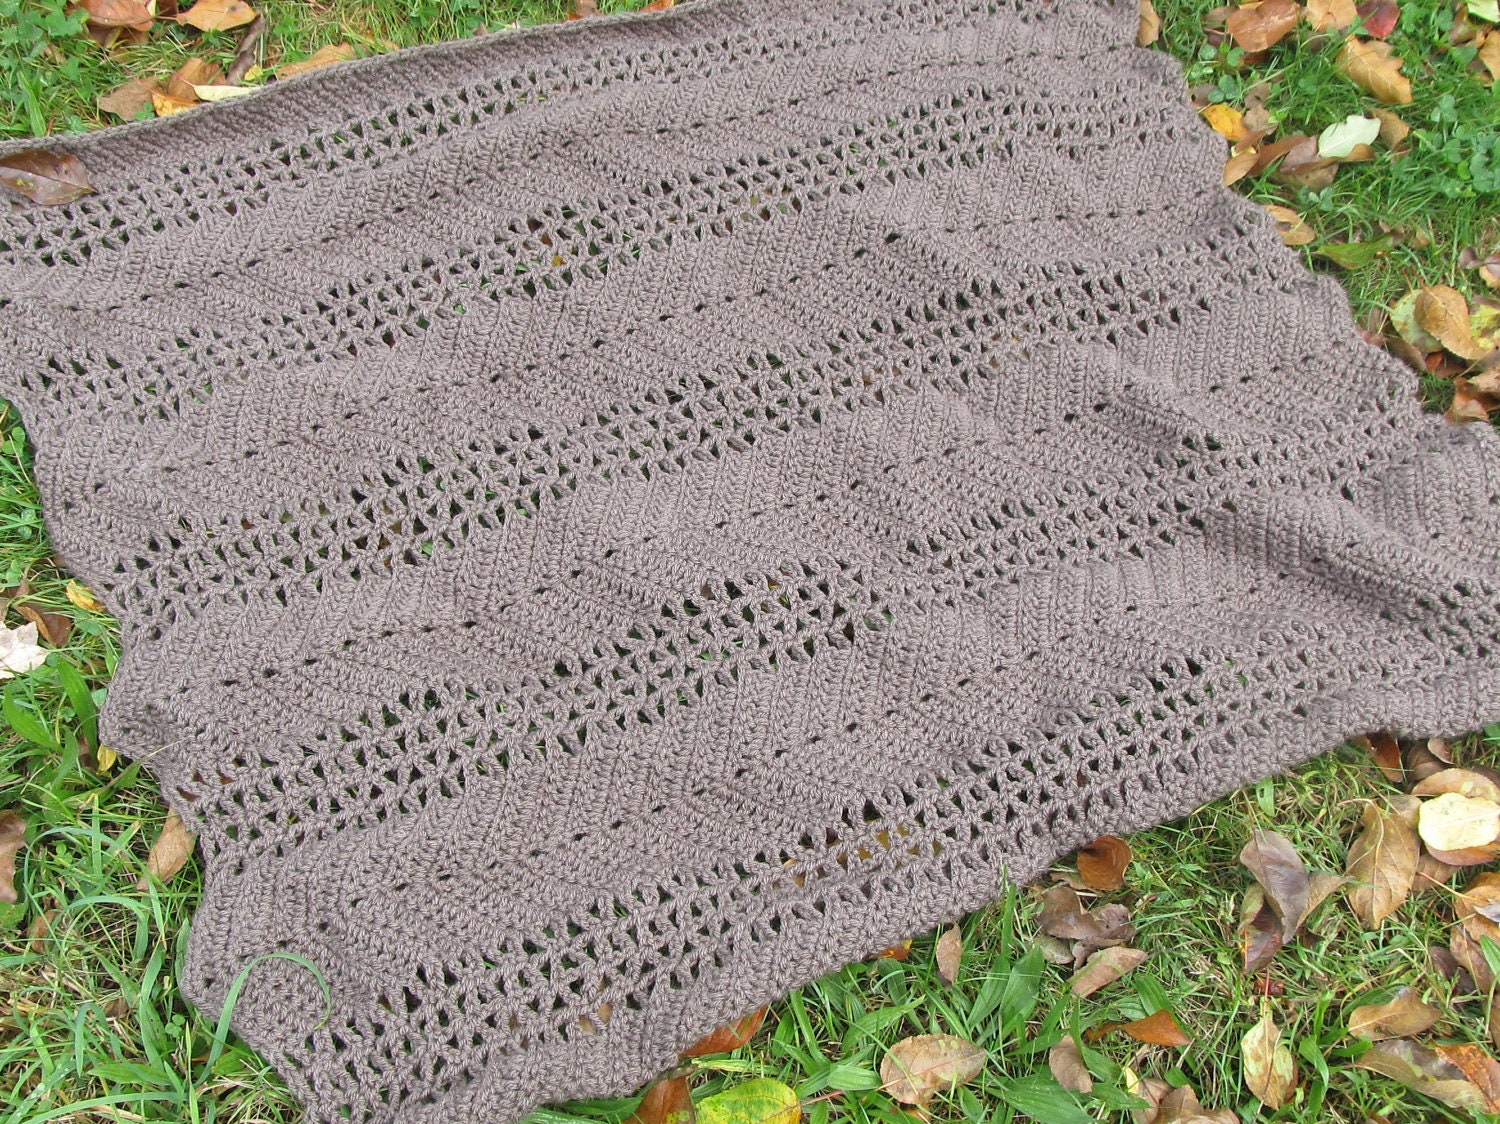 easy crochet lace ripple afghan pattern - Wells Ripple from ...